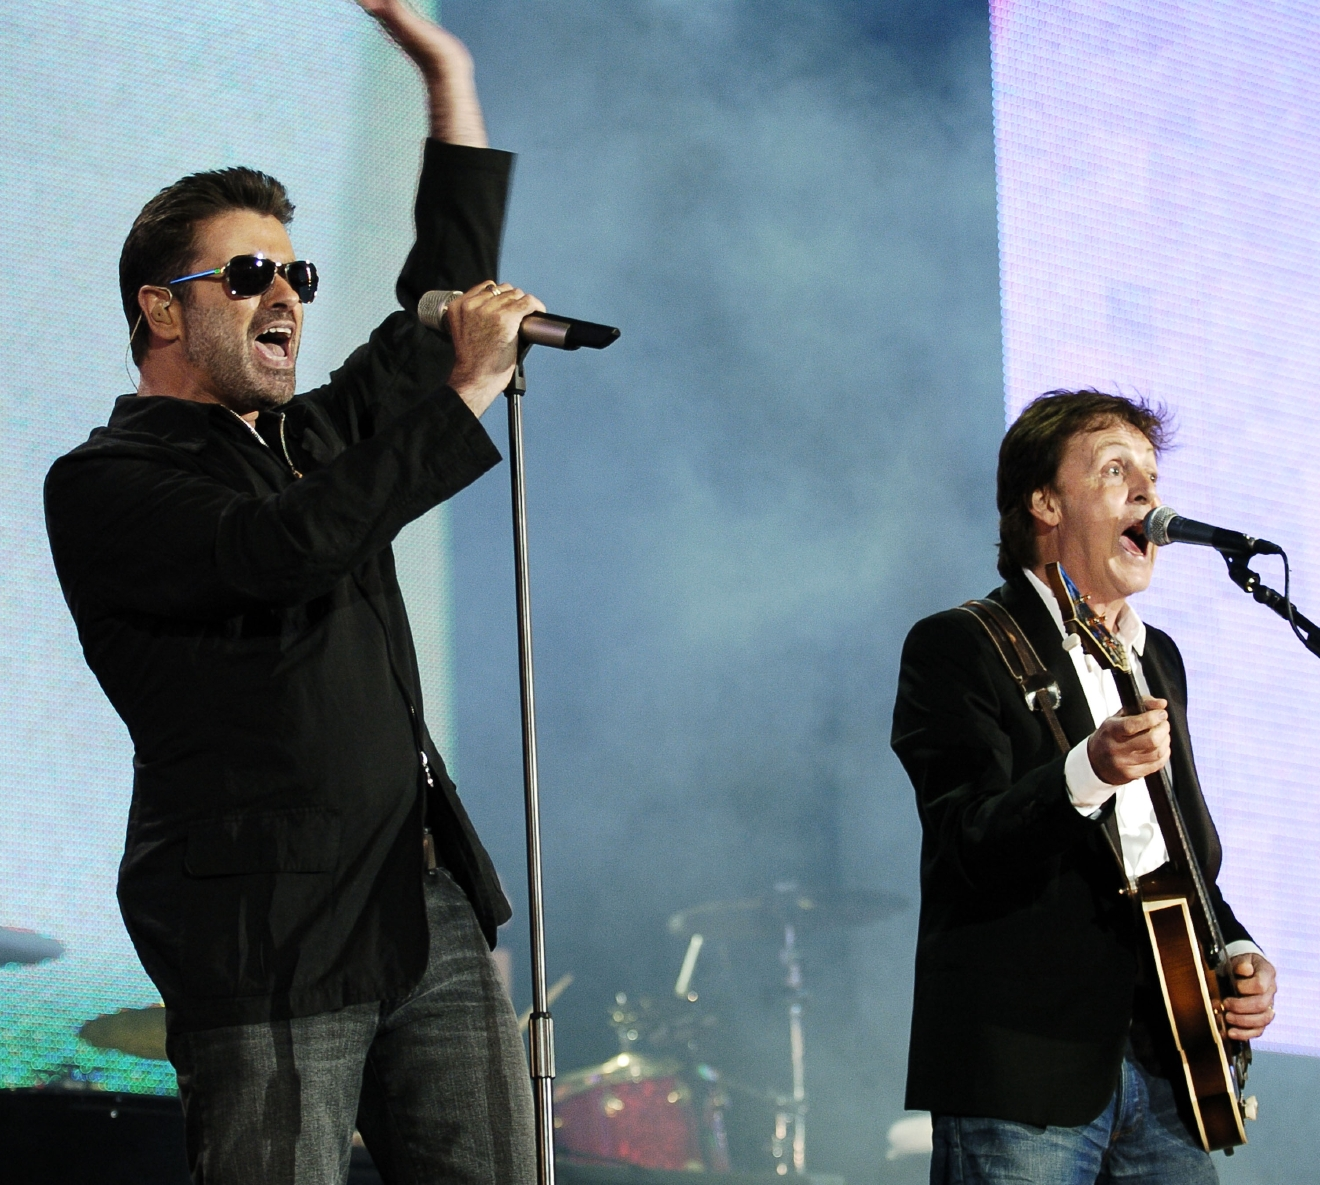 George Michael and Sir Paul McCartney performing live at the  Live 8 Make Poverty History concert held at Hyde Park, London, England - 02 Jul 2005.  Photo by: George Chin/IconicPix  Where: London, England, United Kingdom When: 02 Jul 2005 Credit: George Chin//IconicPix/WENN.com  **Only available for publication in UK, USA, Germany**